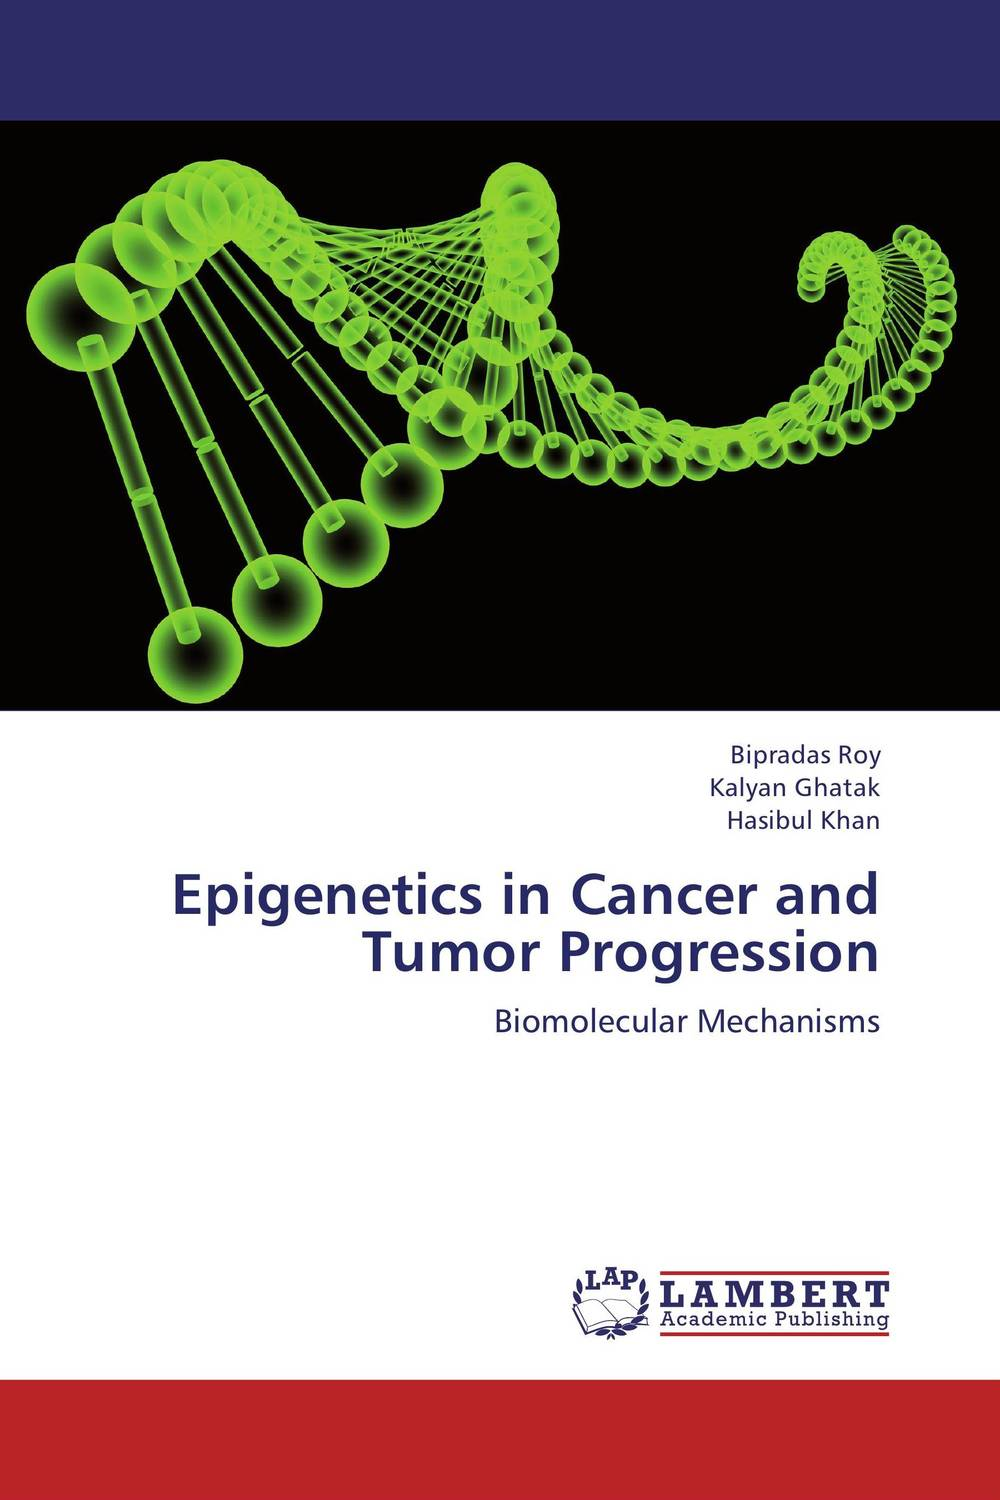 Epigenetics in Cancer and Tumor Progression viruses cell transformation and cancer 5